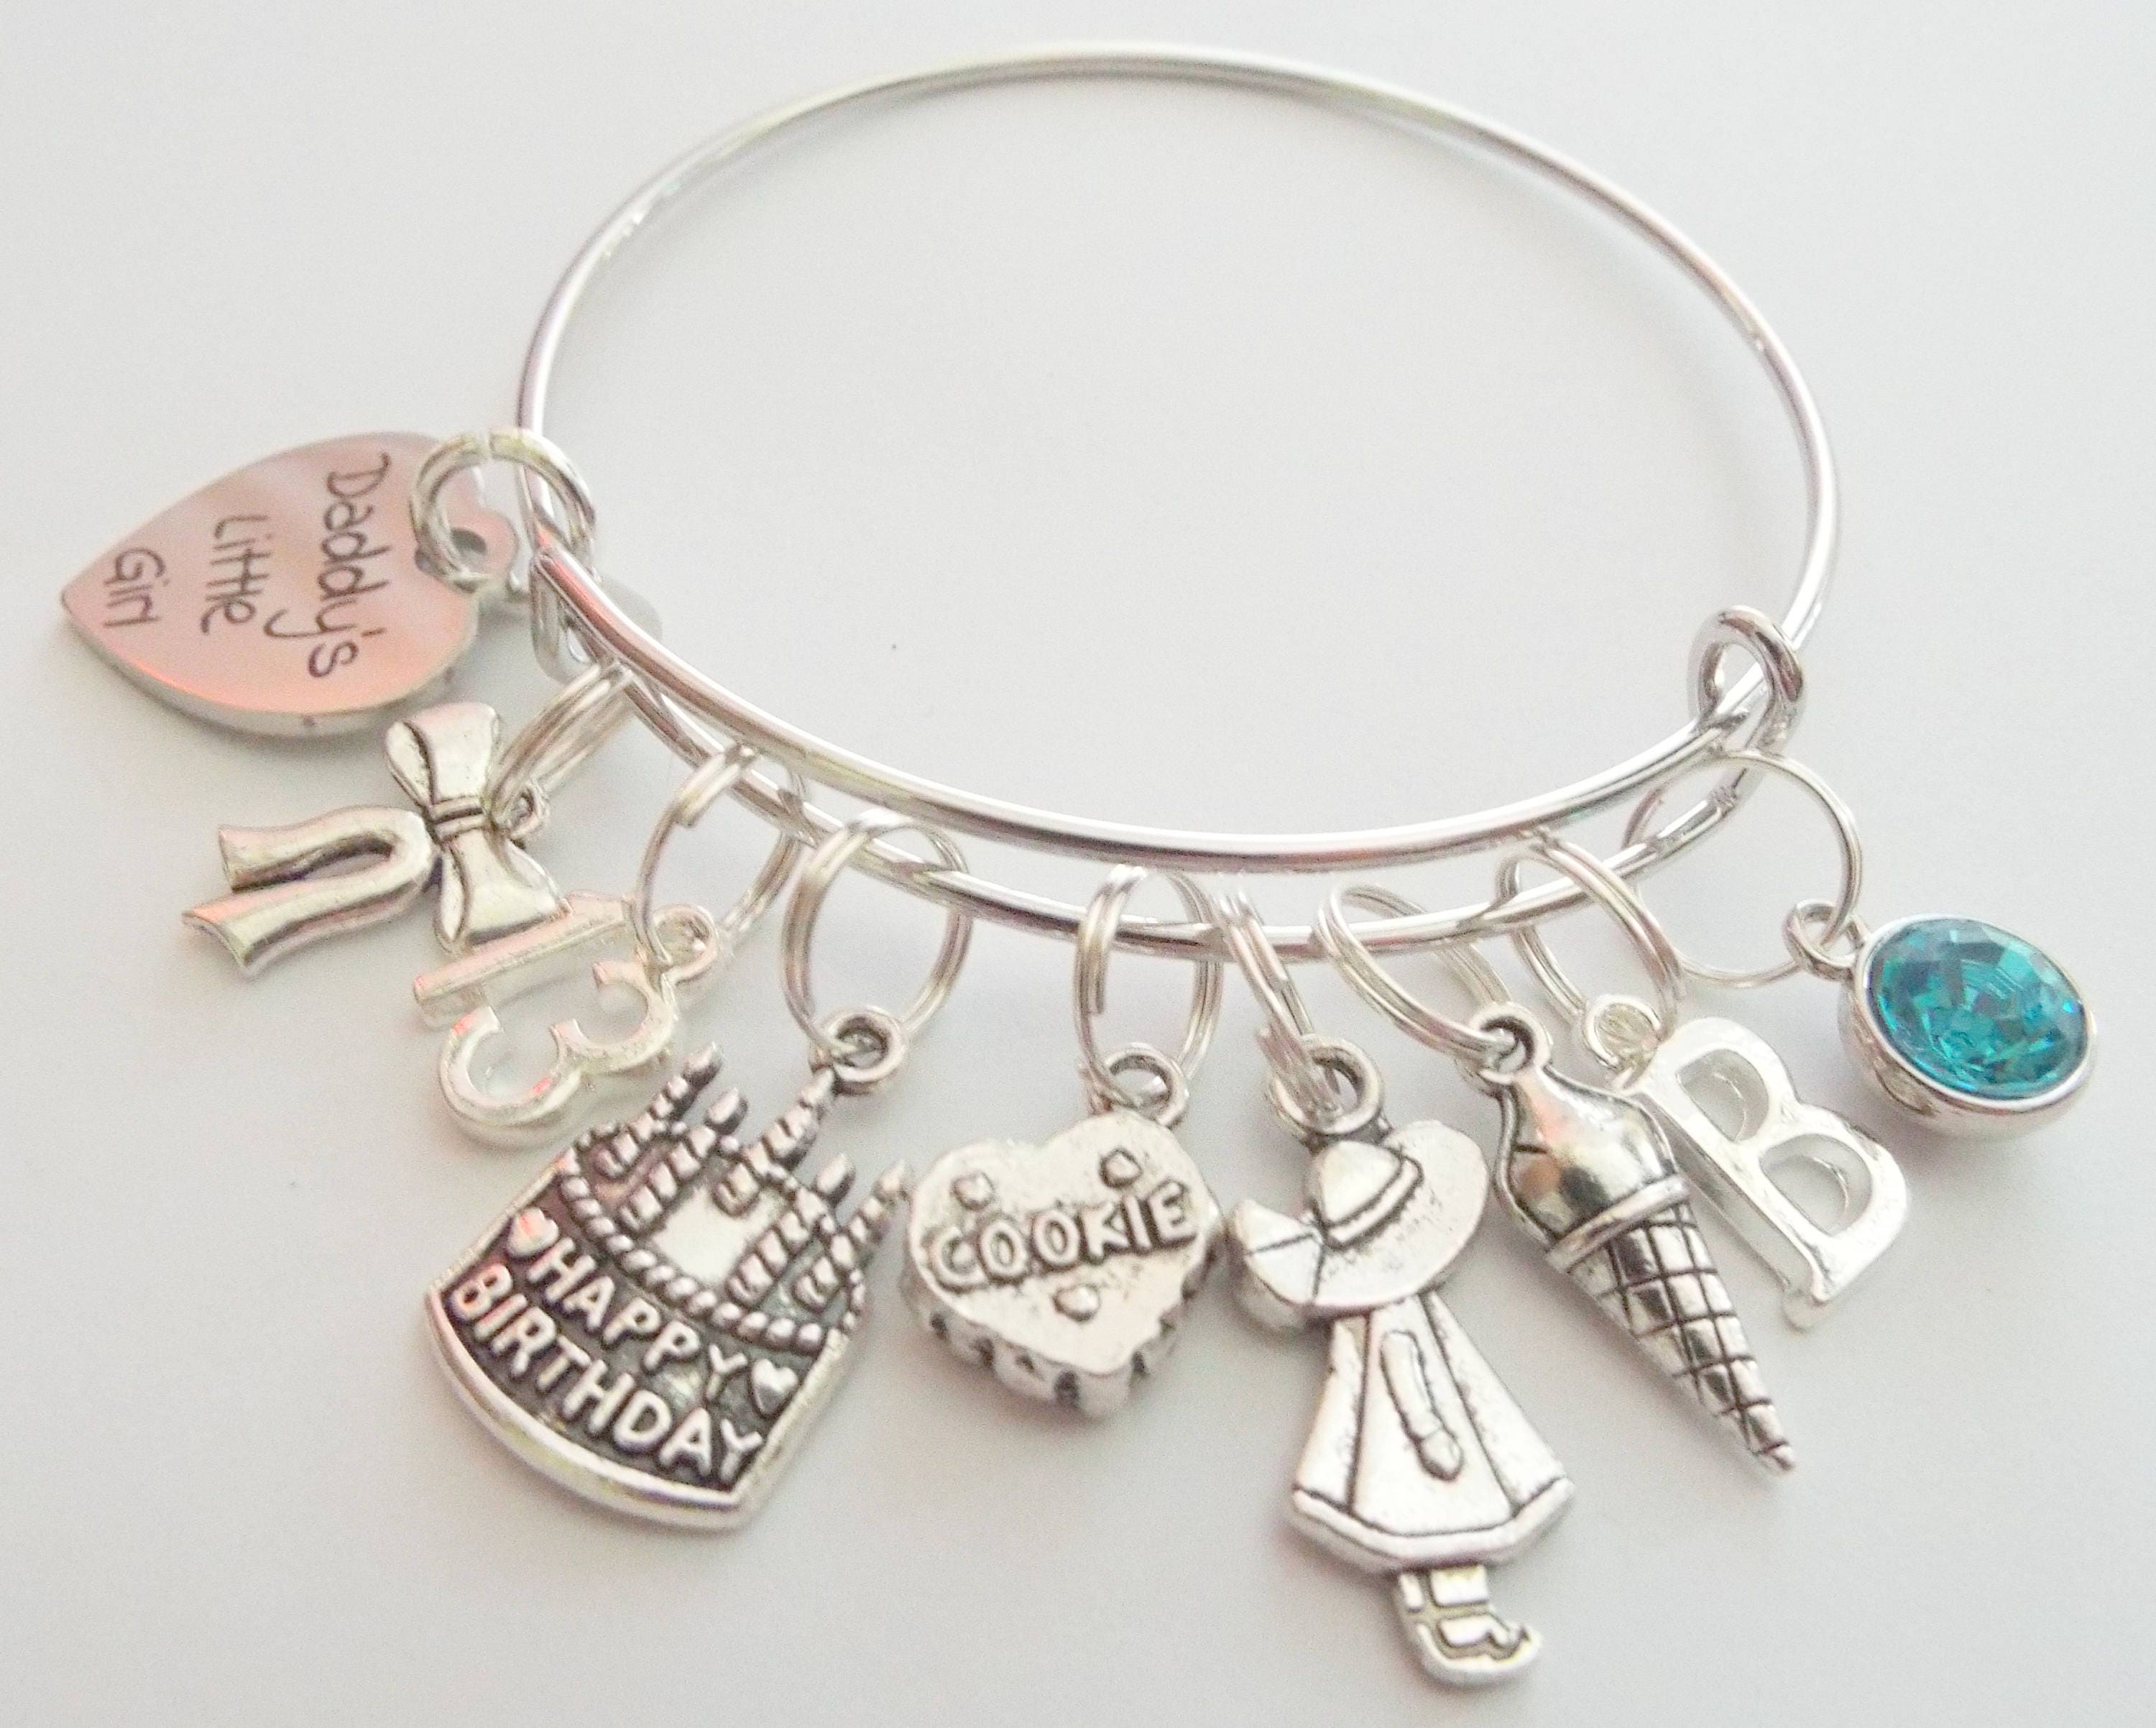 European Father daughter bracelet charms charm dad Daddy/'s Little girl